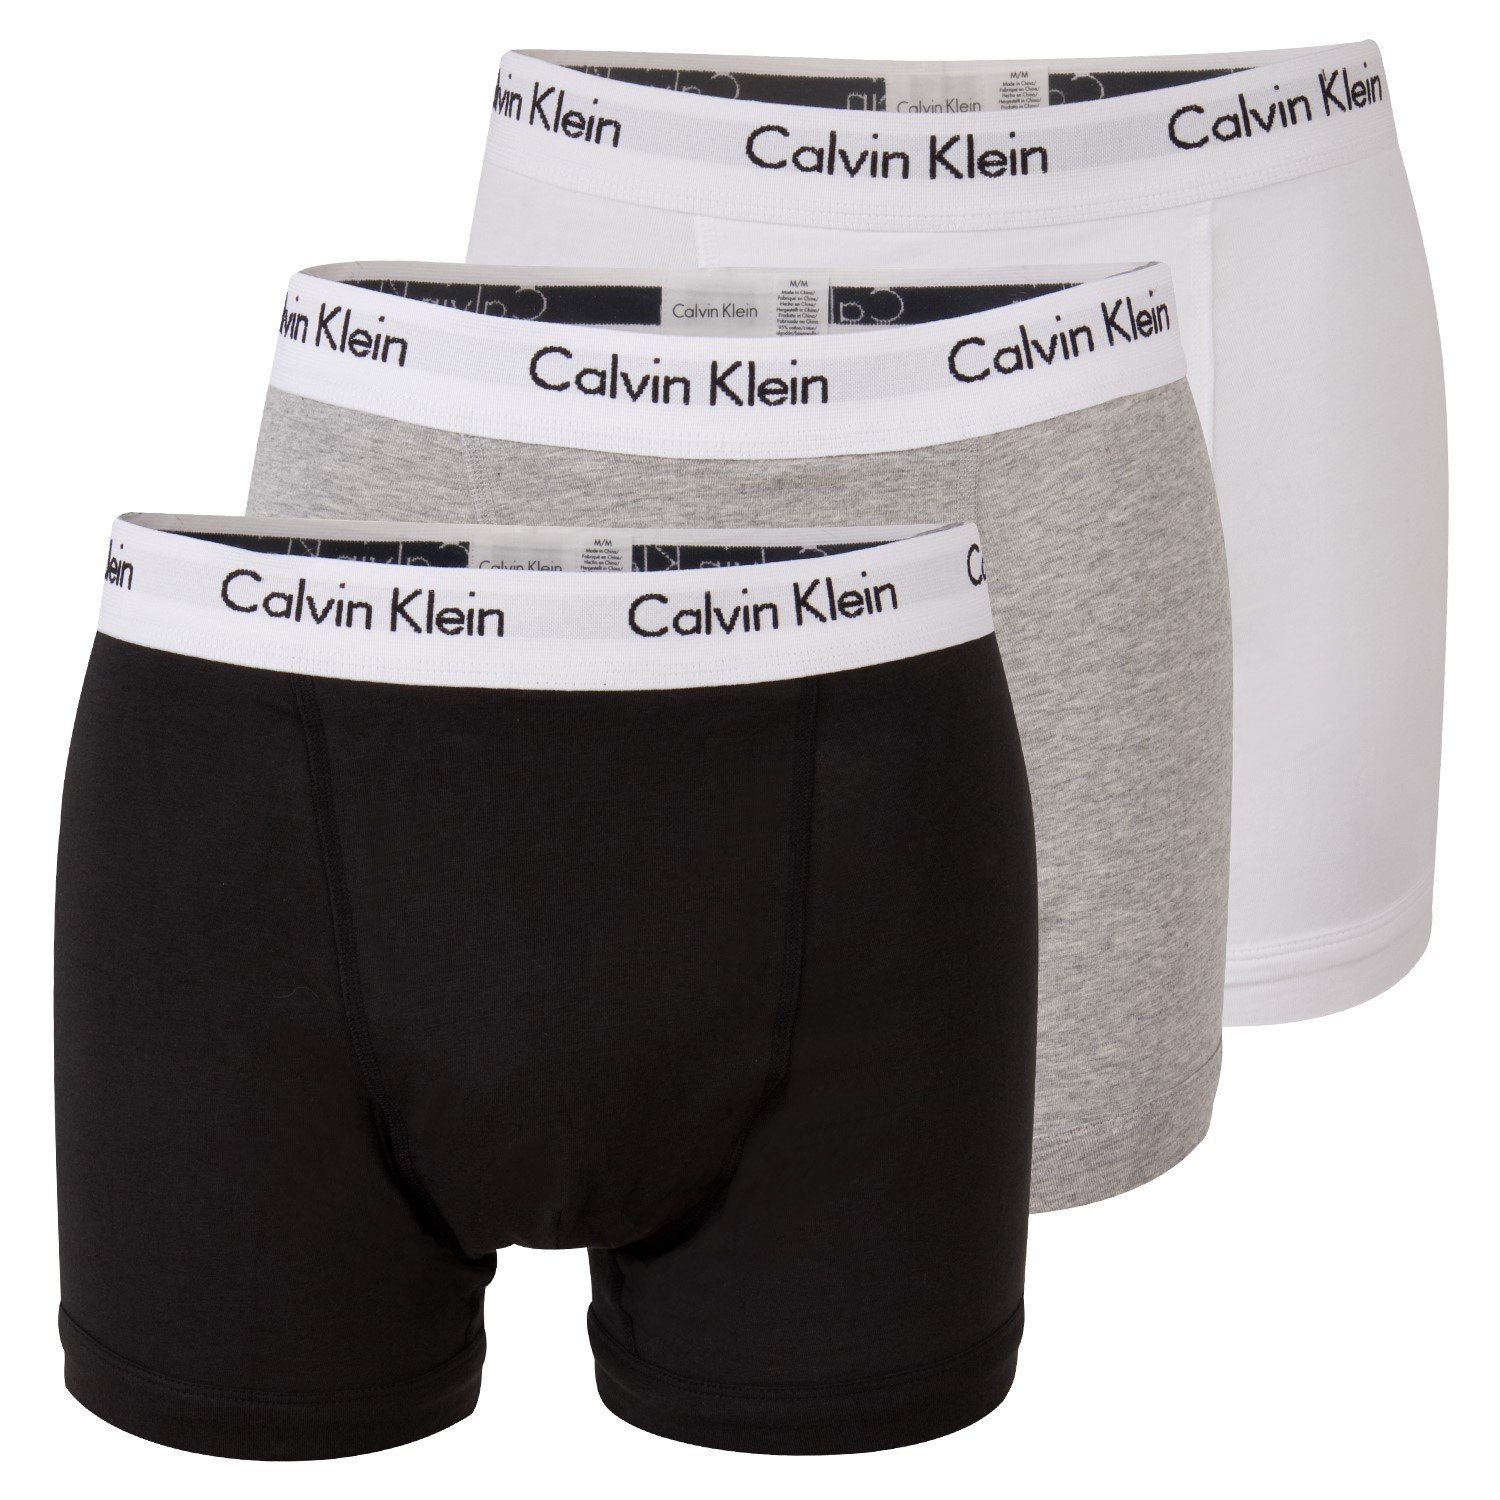 Calvin Klein Boxer Calecon Pack of 3 Grey/Black/White